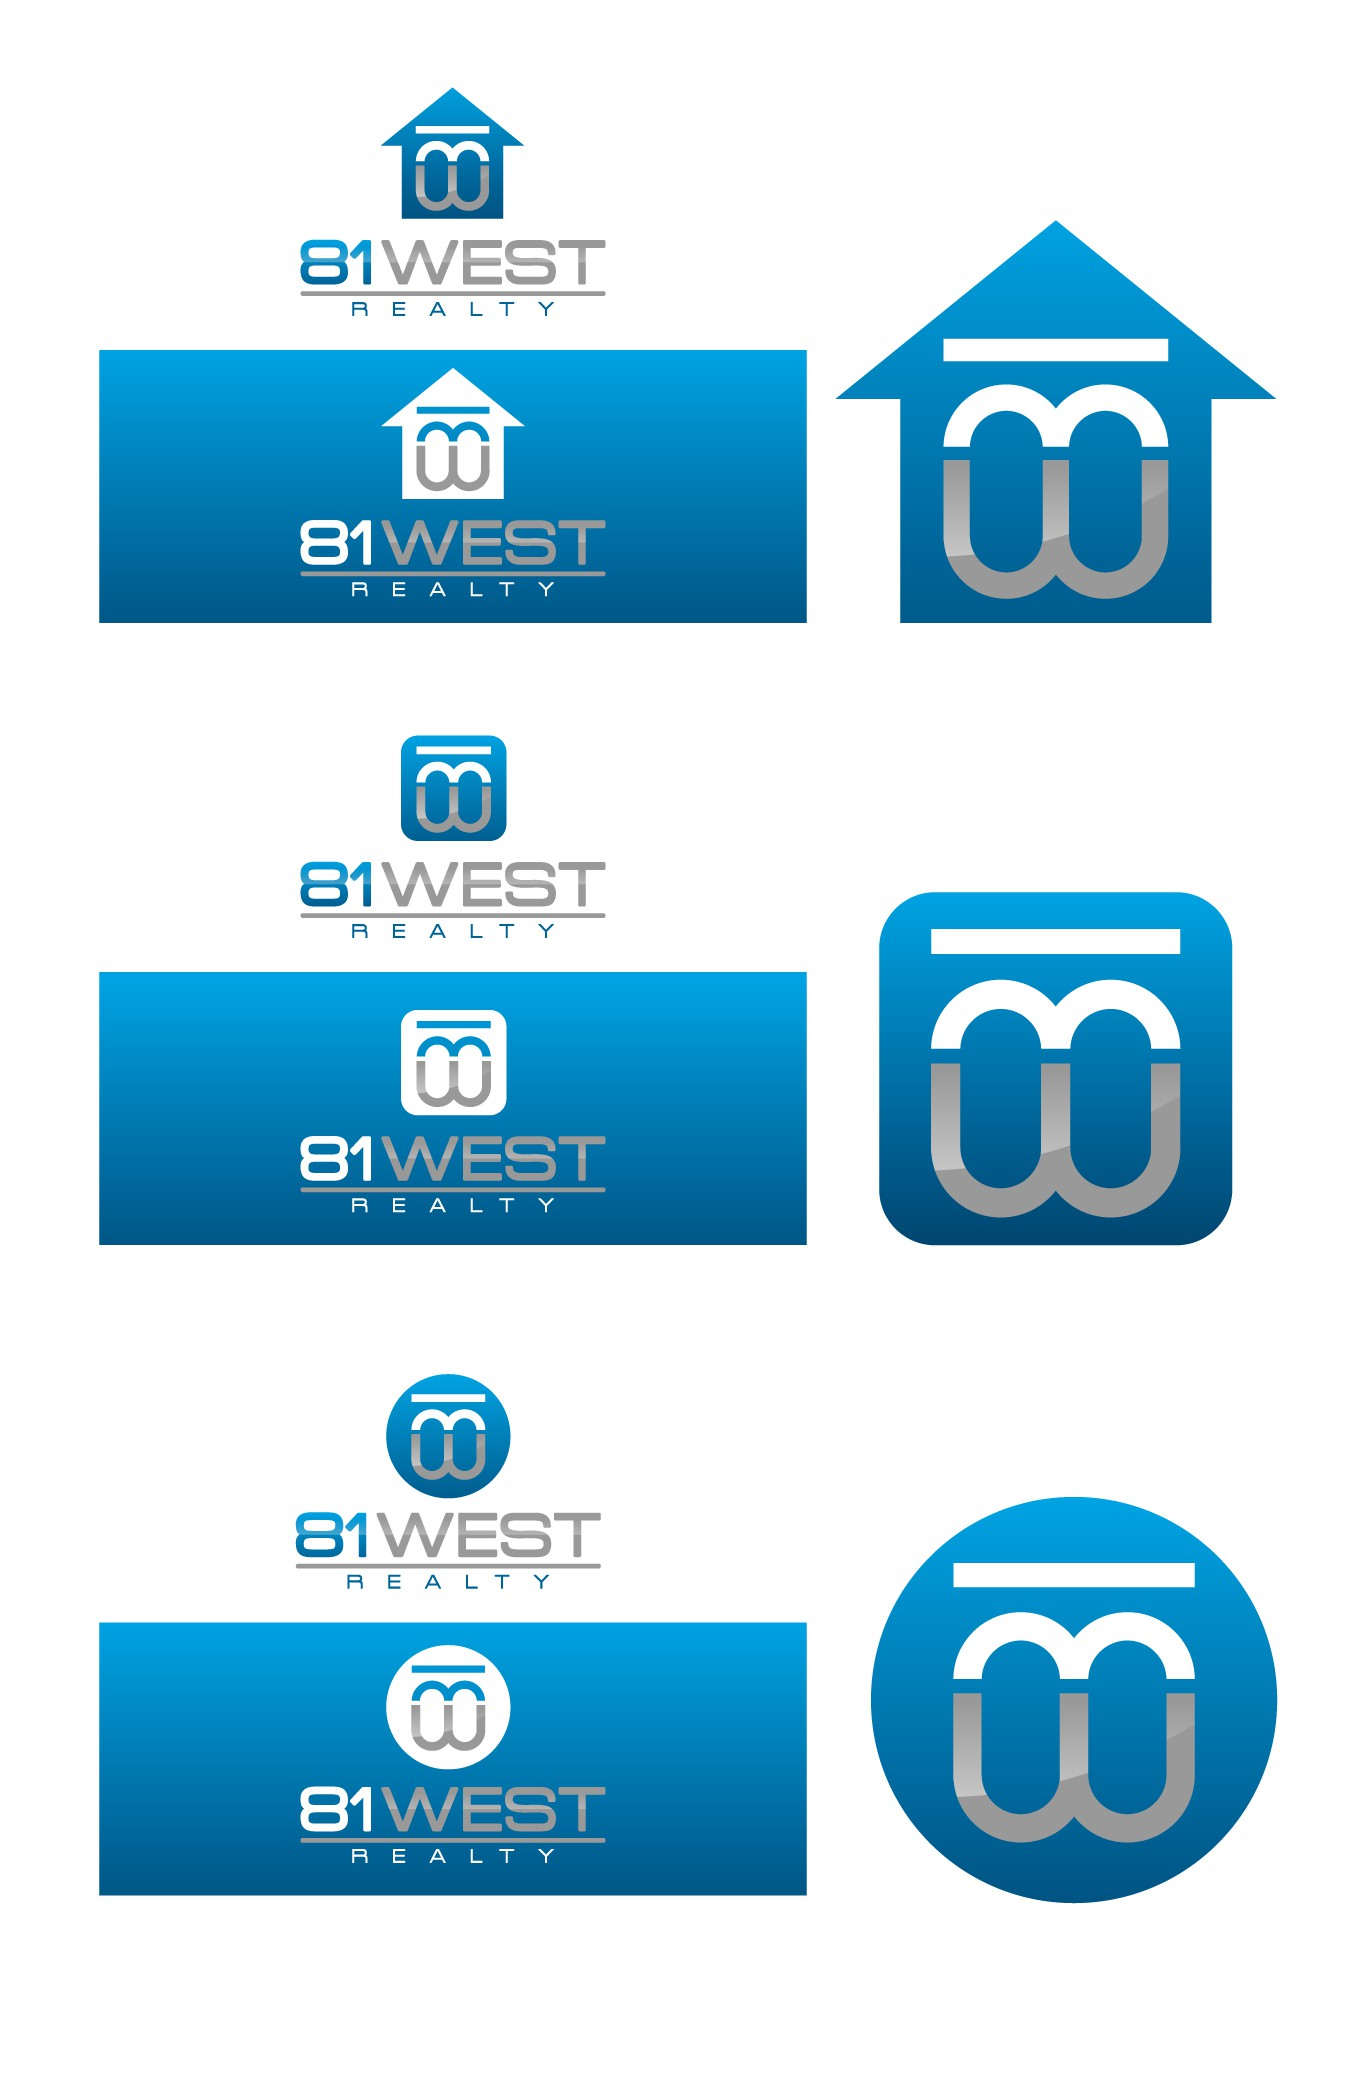 Create the next logo for 81 West Realty